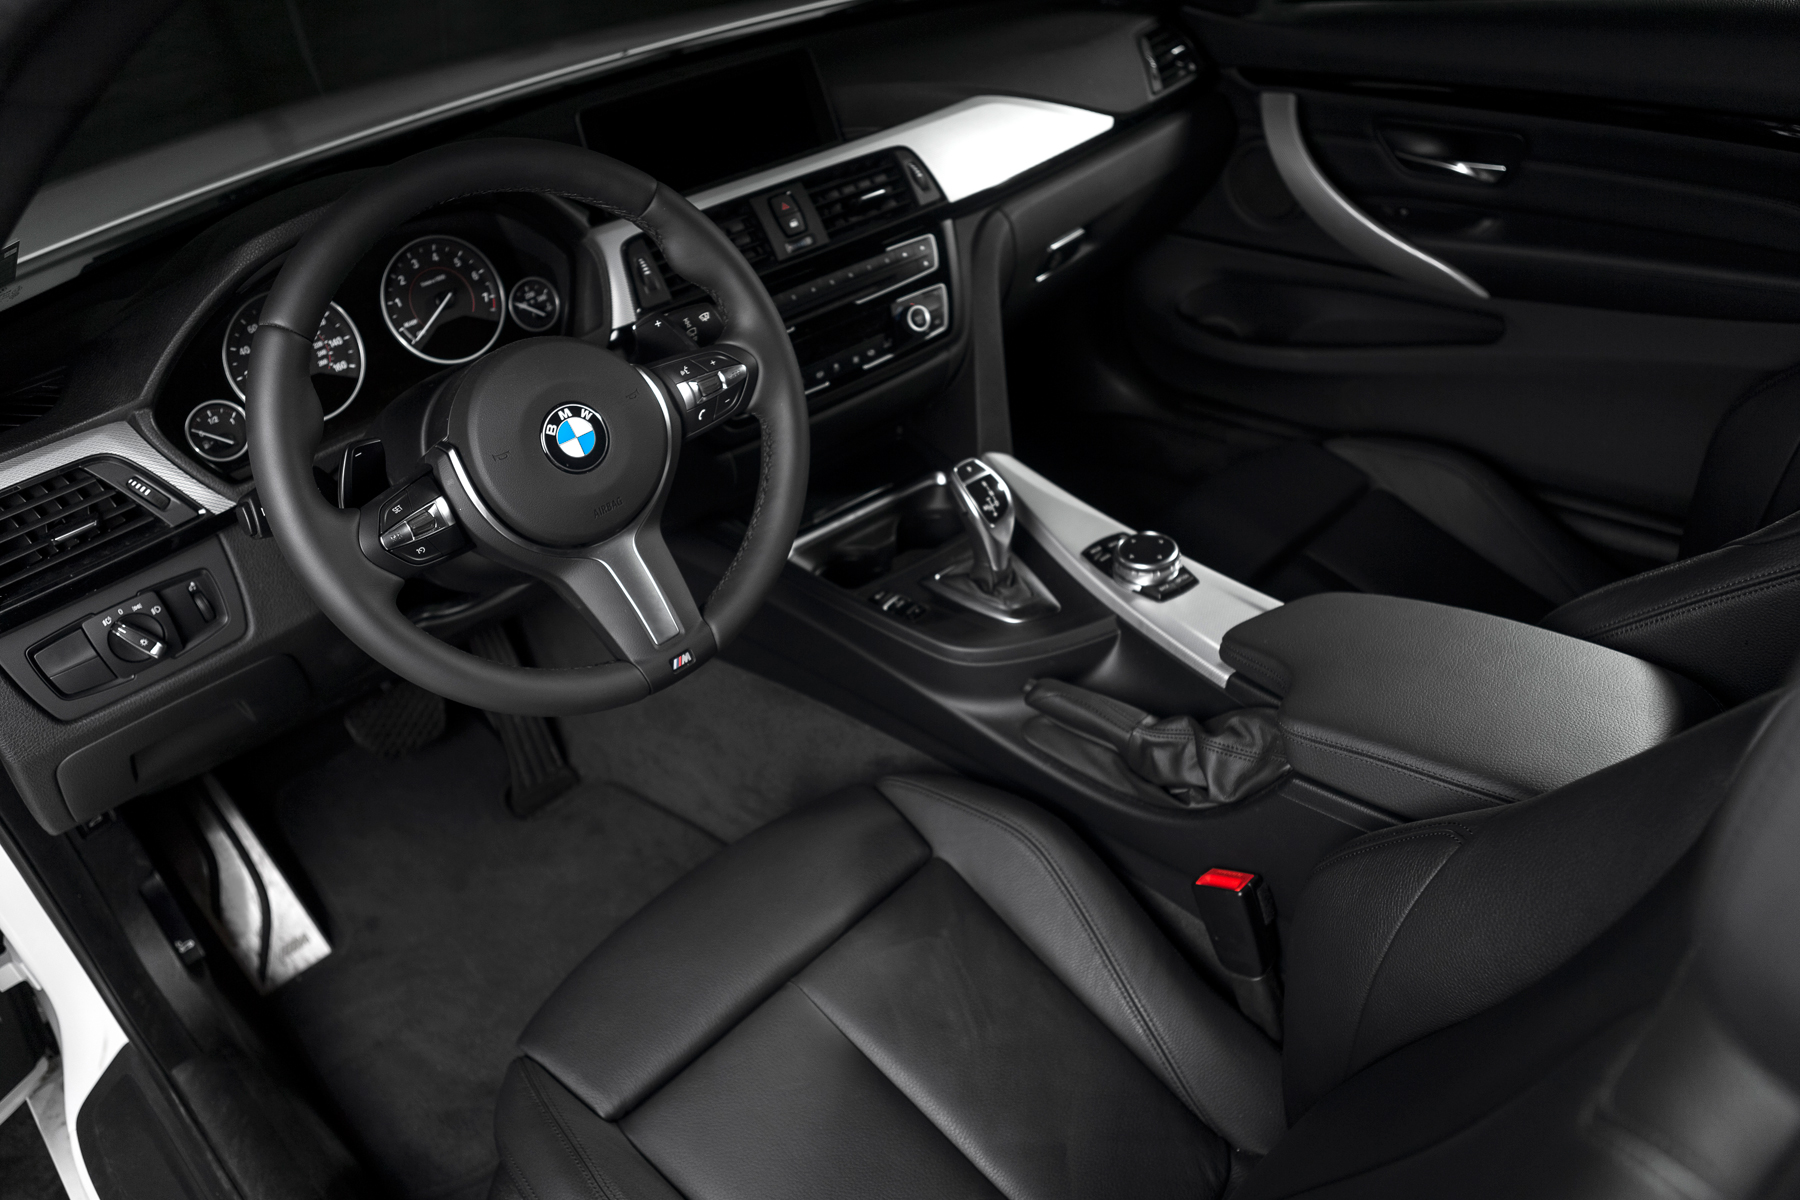 Bmw 435i Zhp Coupe In 16 02 2016 BMW ZHP Interior